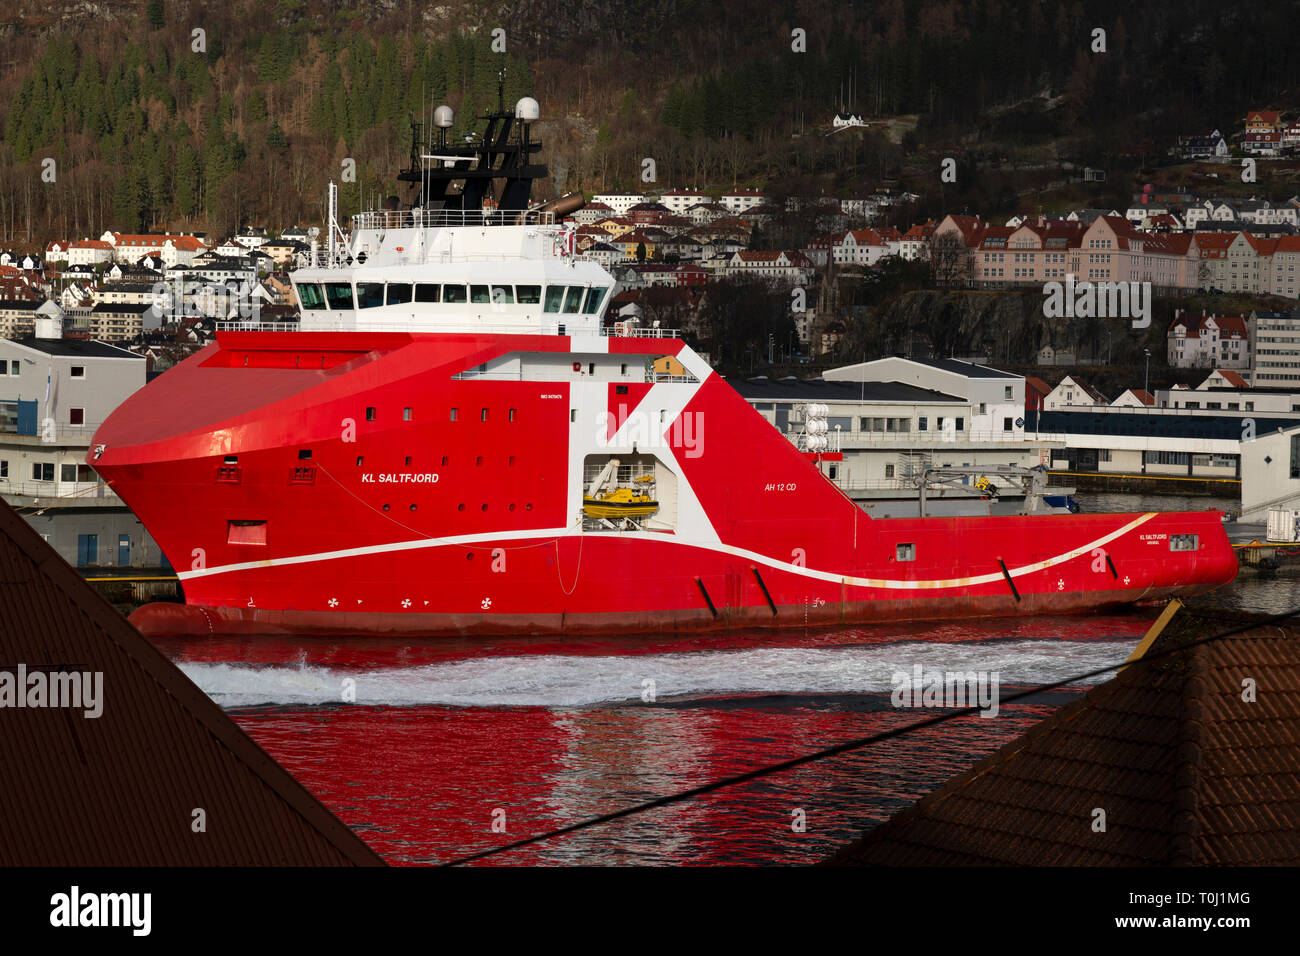 The Norwegian Off Shore Supply Ship KL Saltfjord in the sea port of Bergen in Norway. - Stock Image